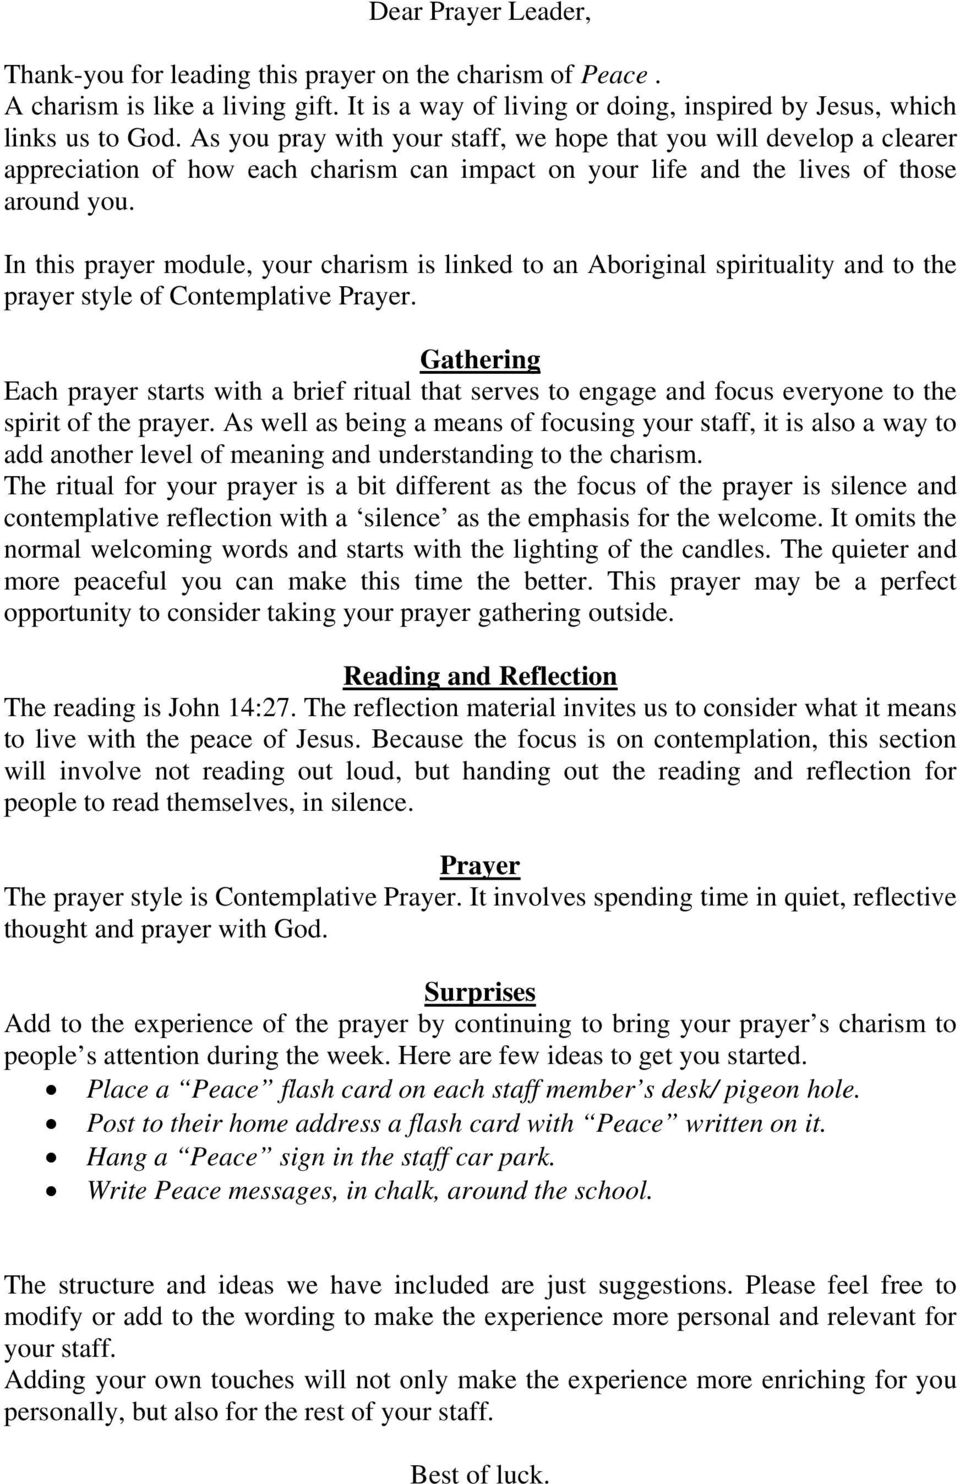 In this prayer module, your charism is linked to an Aboriginal spirituality and to the prayer style of Contemplative Prayer.